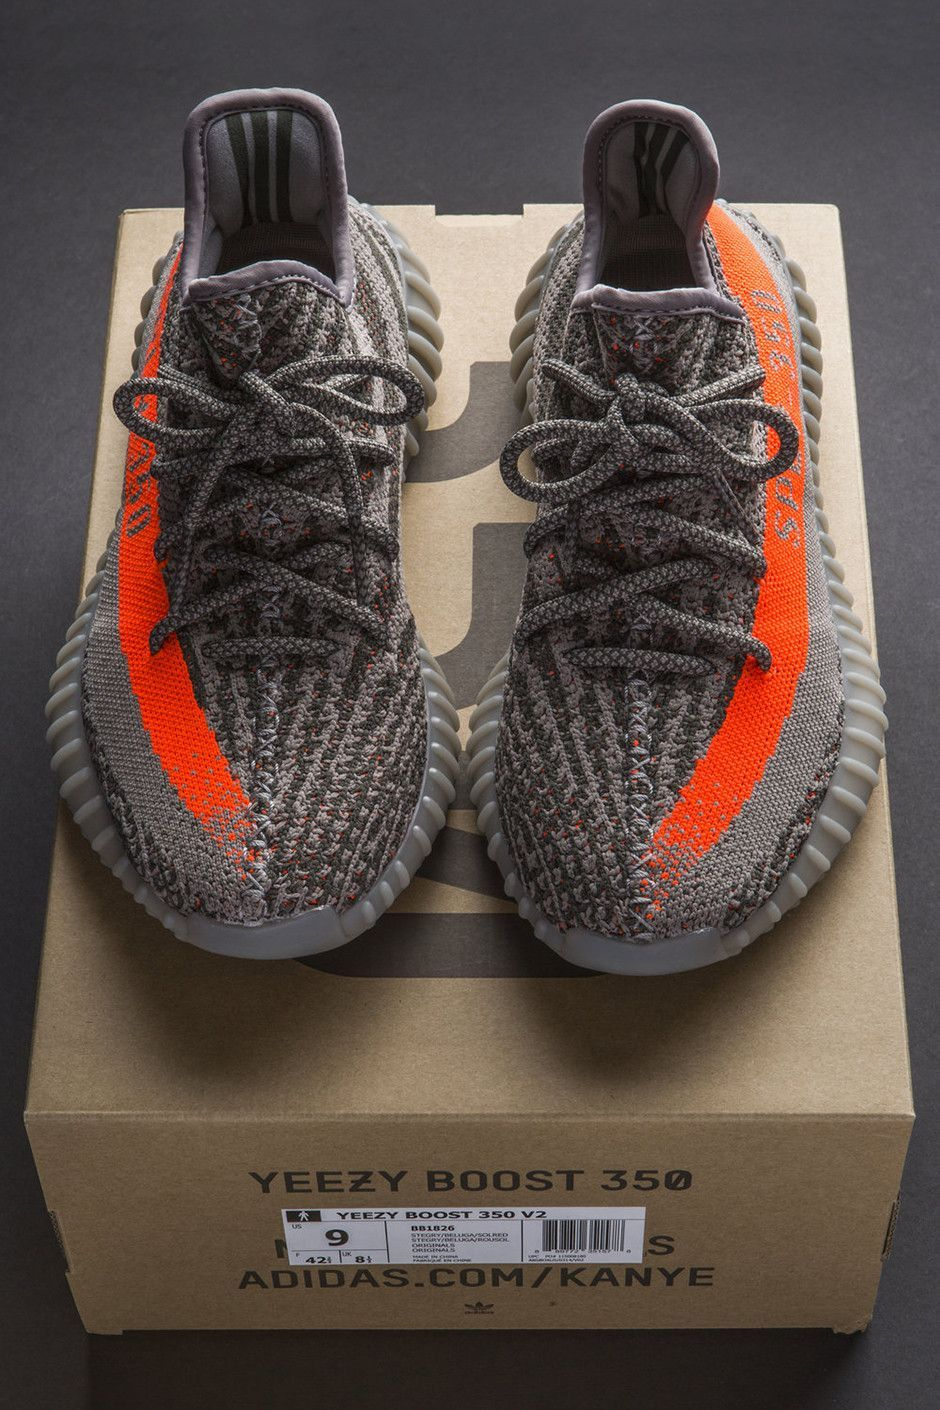 adidas yeezy boost 350 v2 homme orange